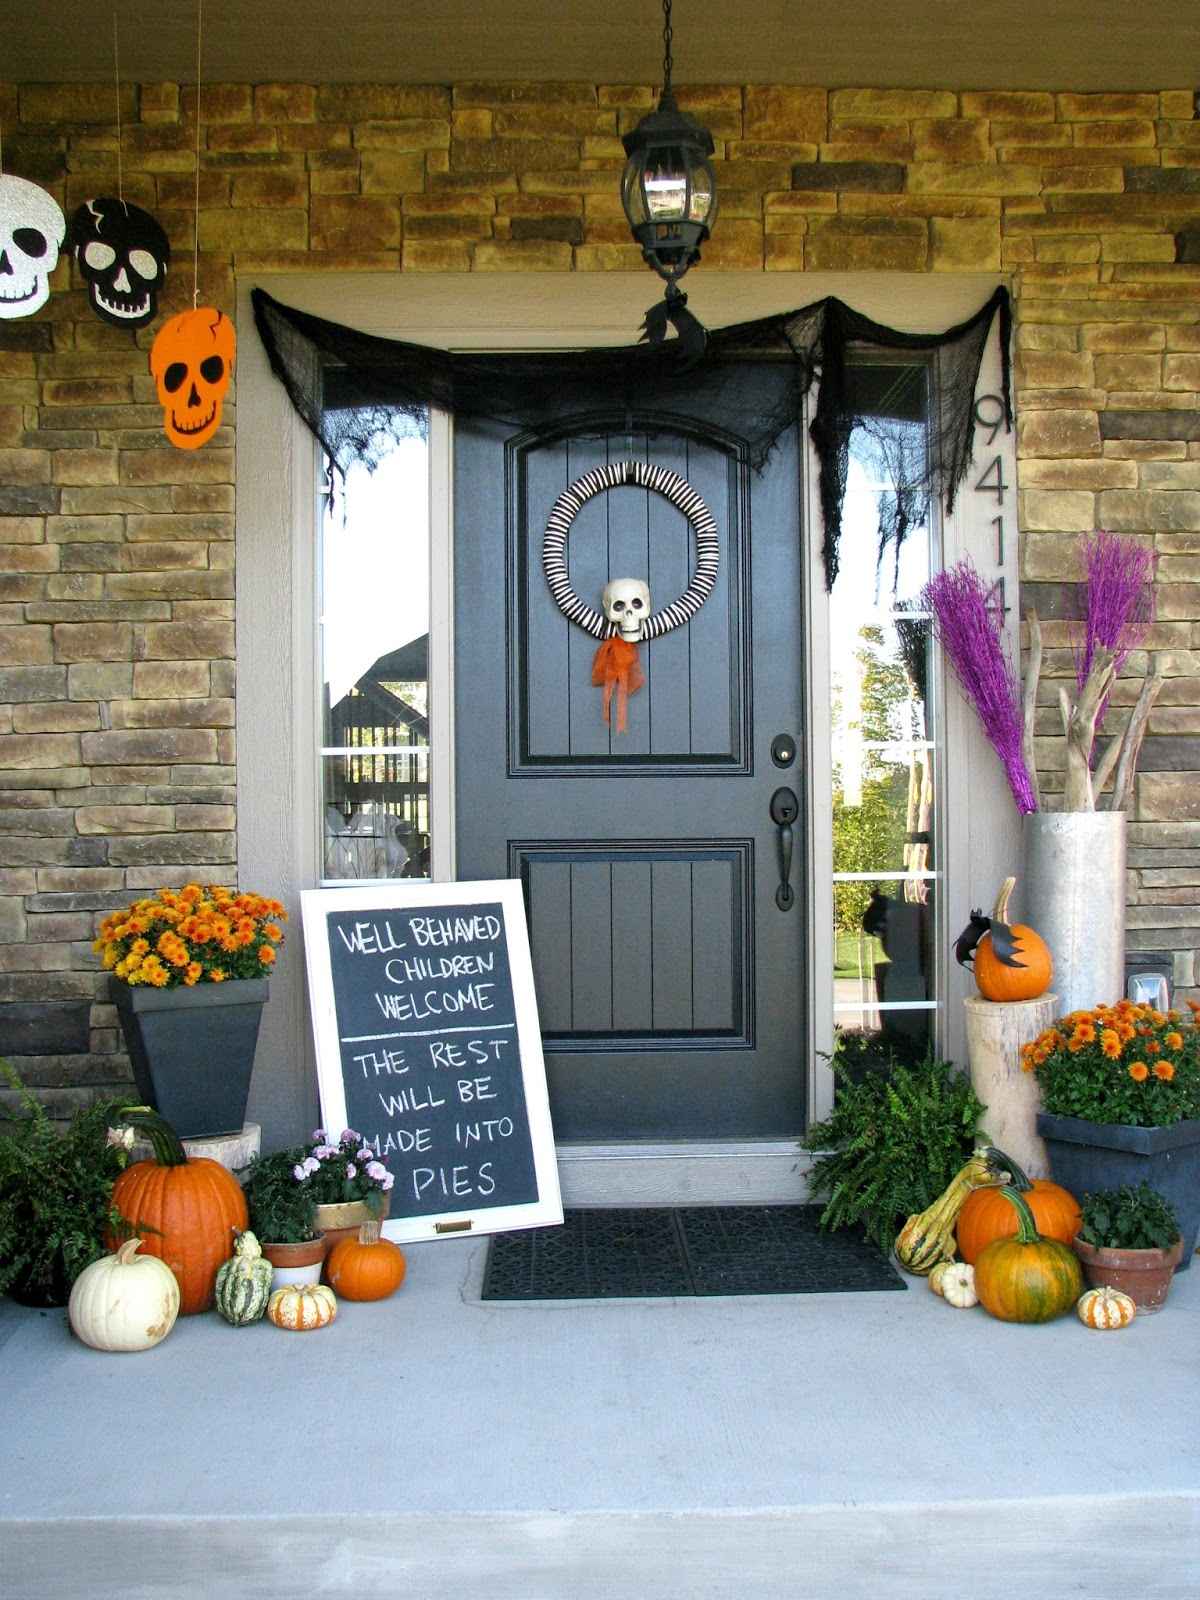 decorating ideas inspiring spooky skull spider pumpkin carving halloween decoration 6971201 cute halloween front porch decorations to greet your guests - Halloween Decoration Ideas For Outside